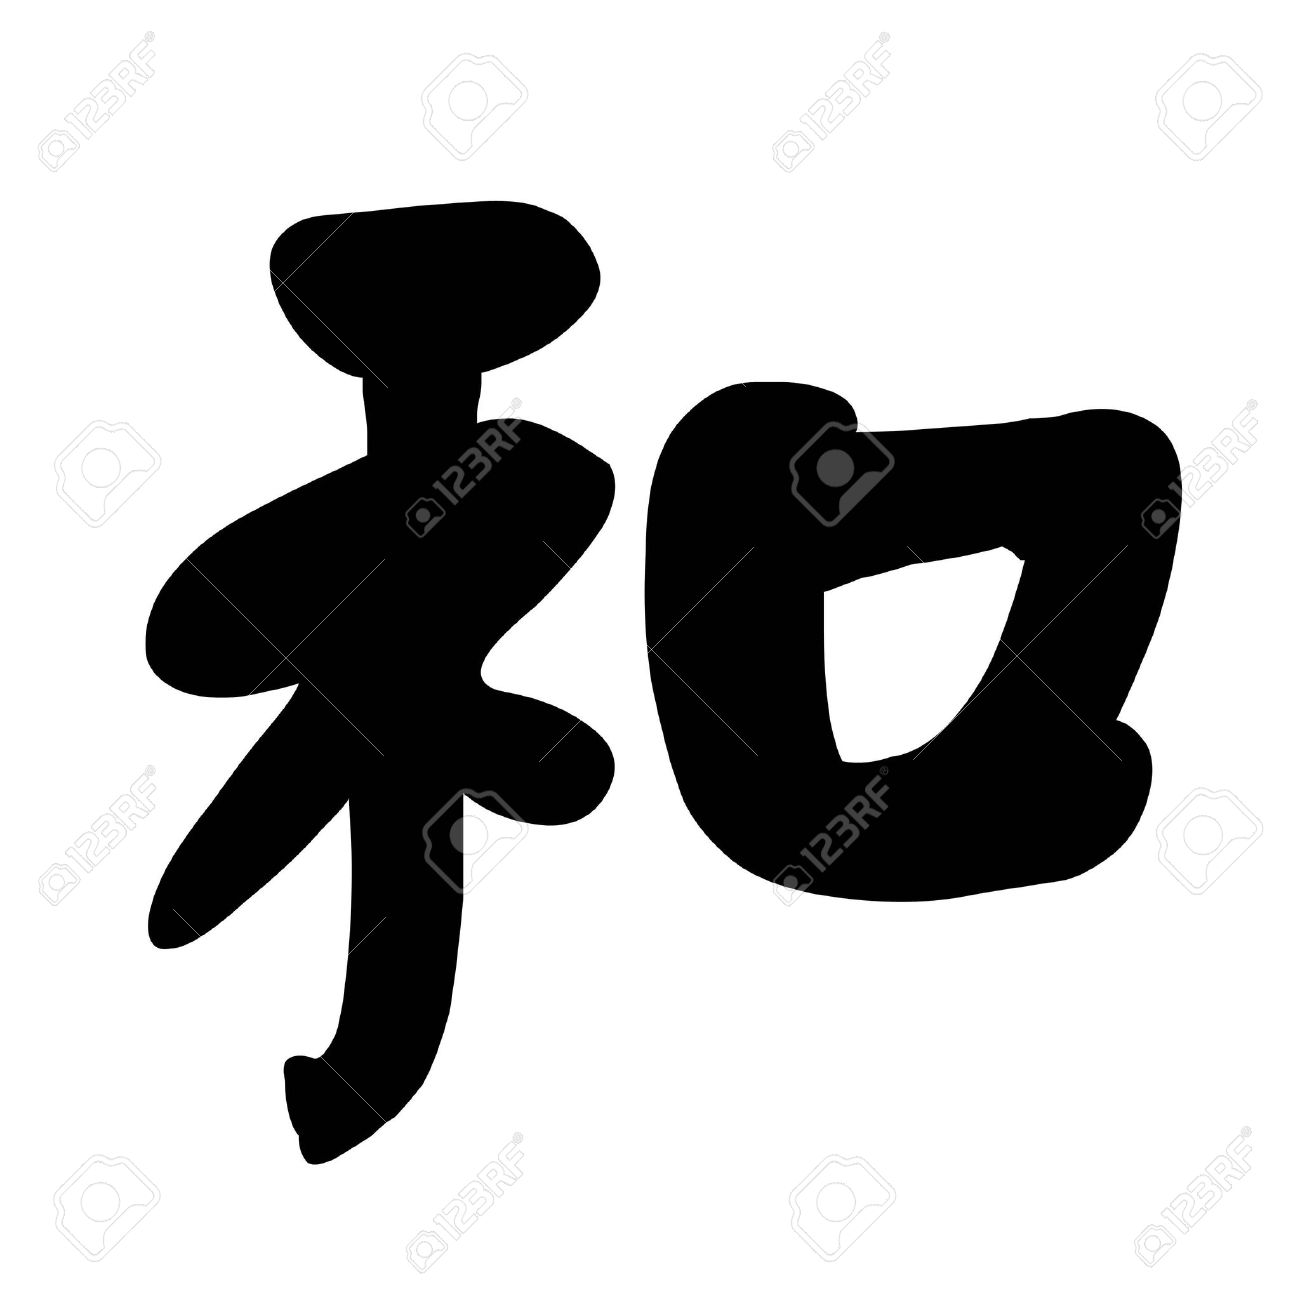 Chinese Calligraphy Character peace Stock Photo - 7678447